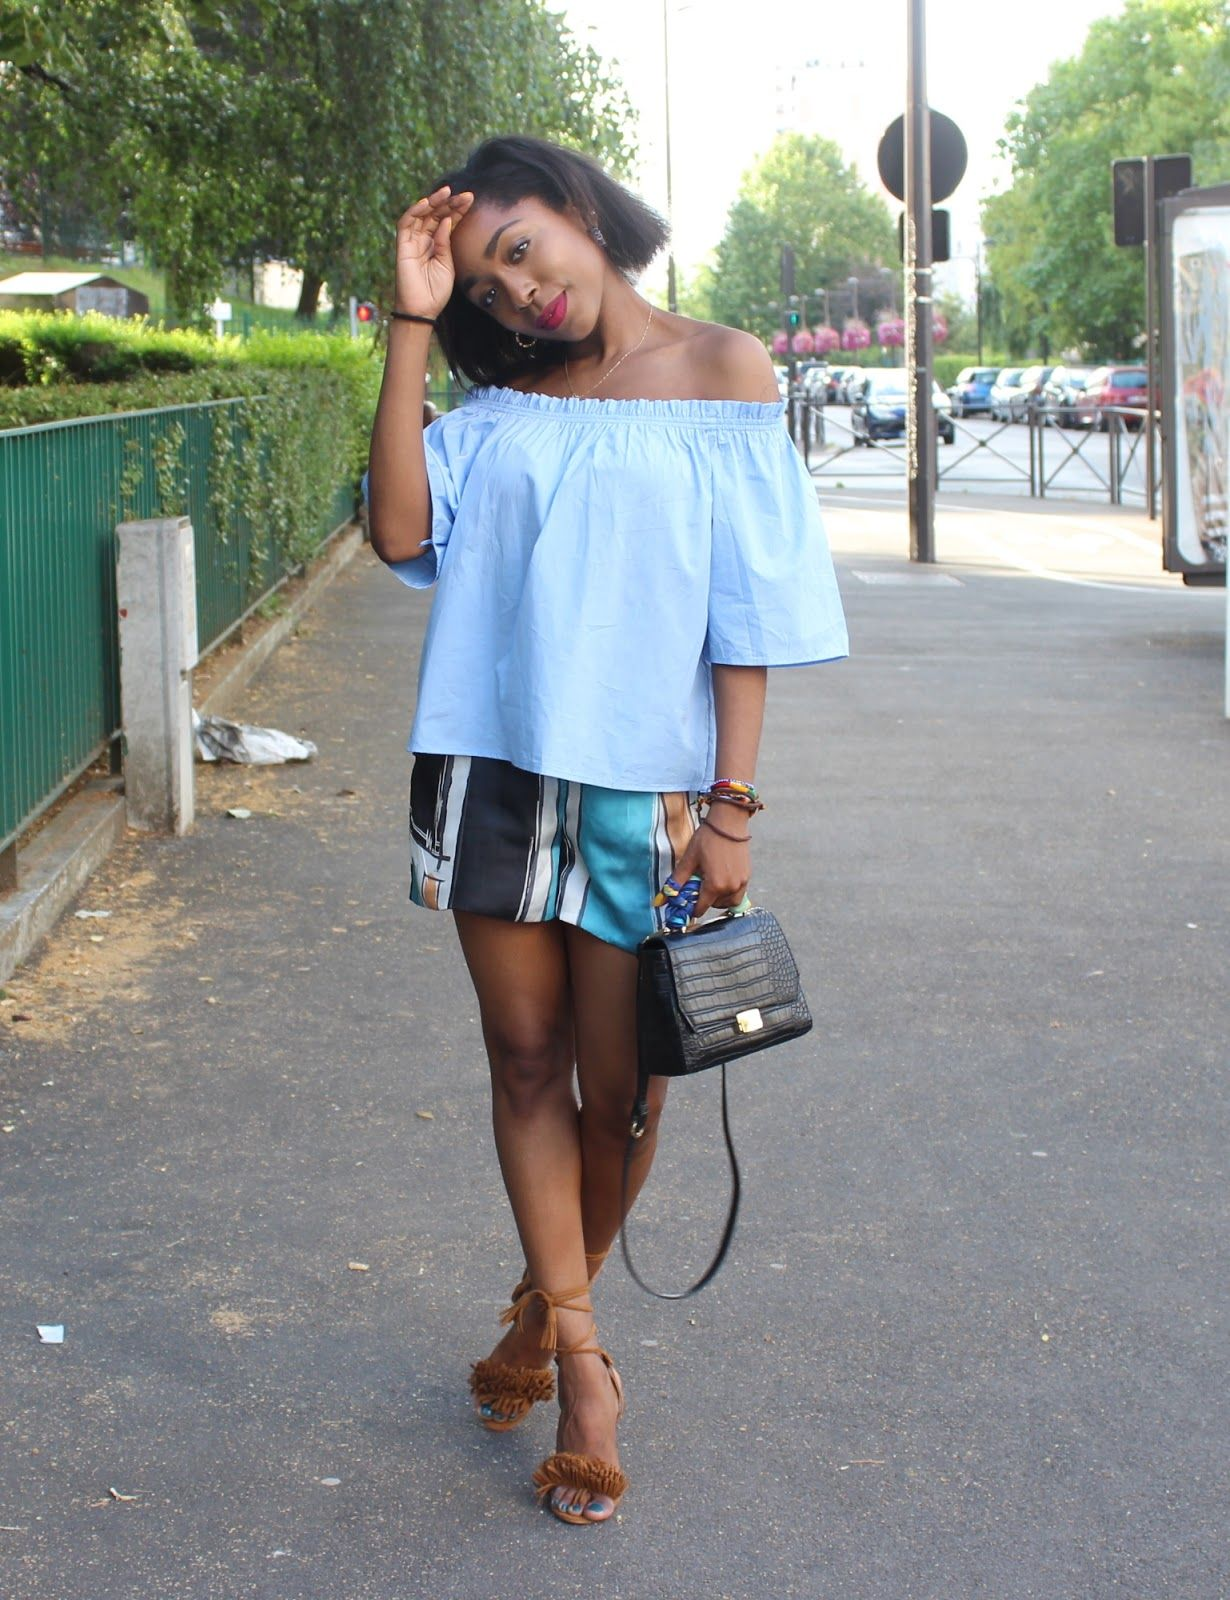 Elsy and The Blog: Off-The-Shoulders Approved